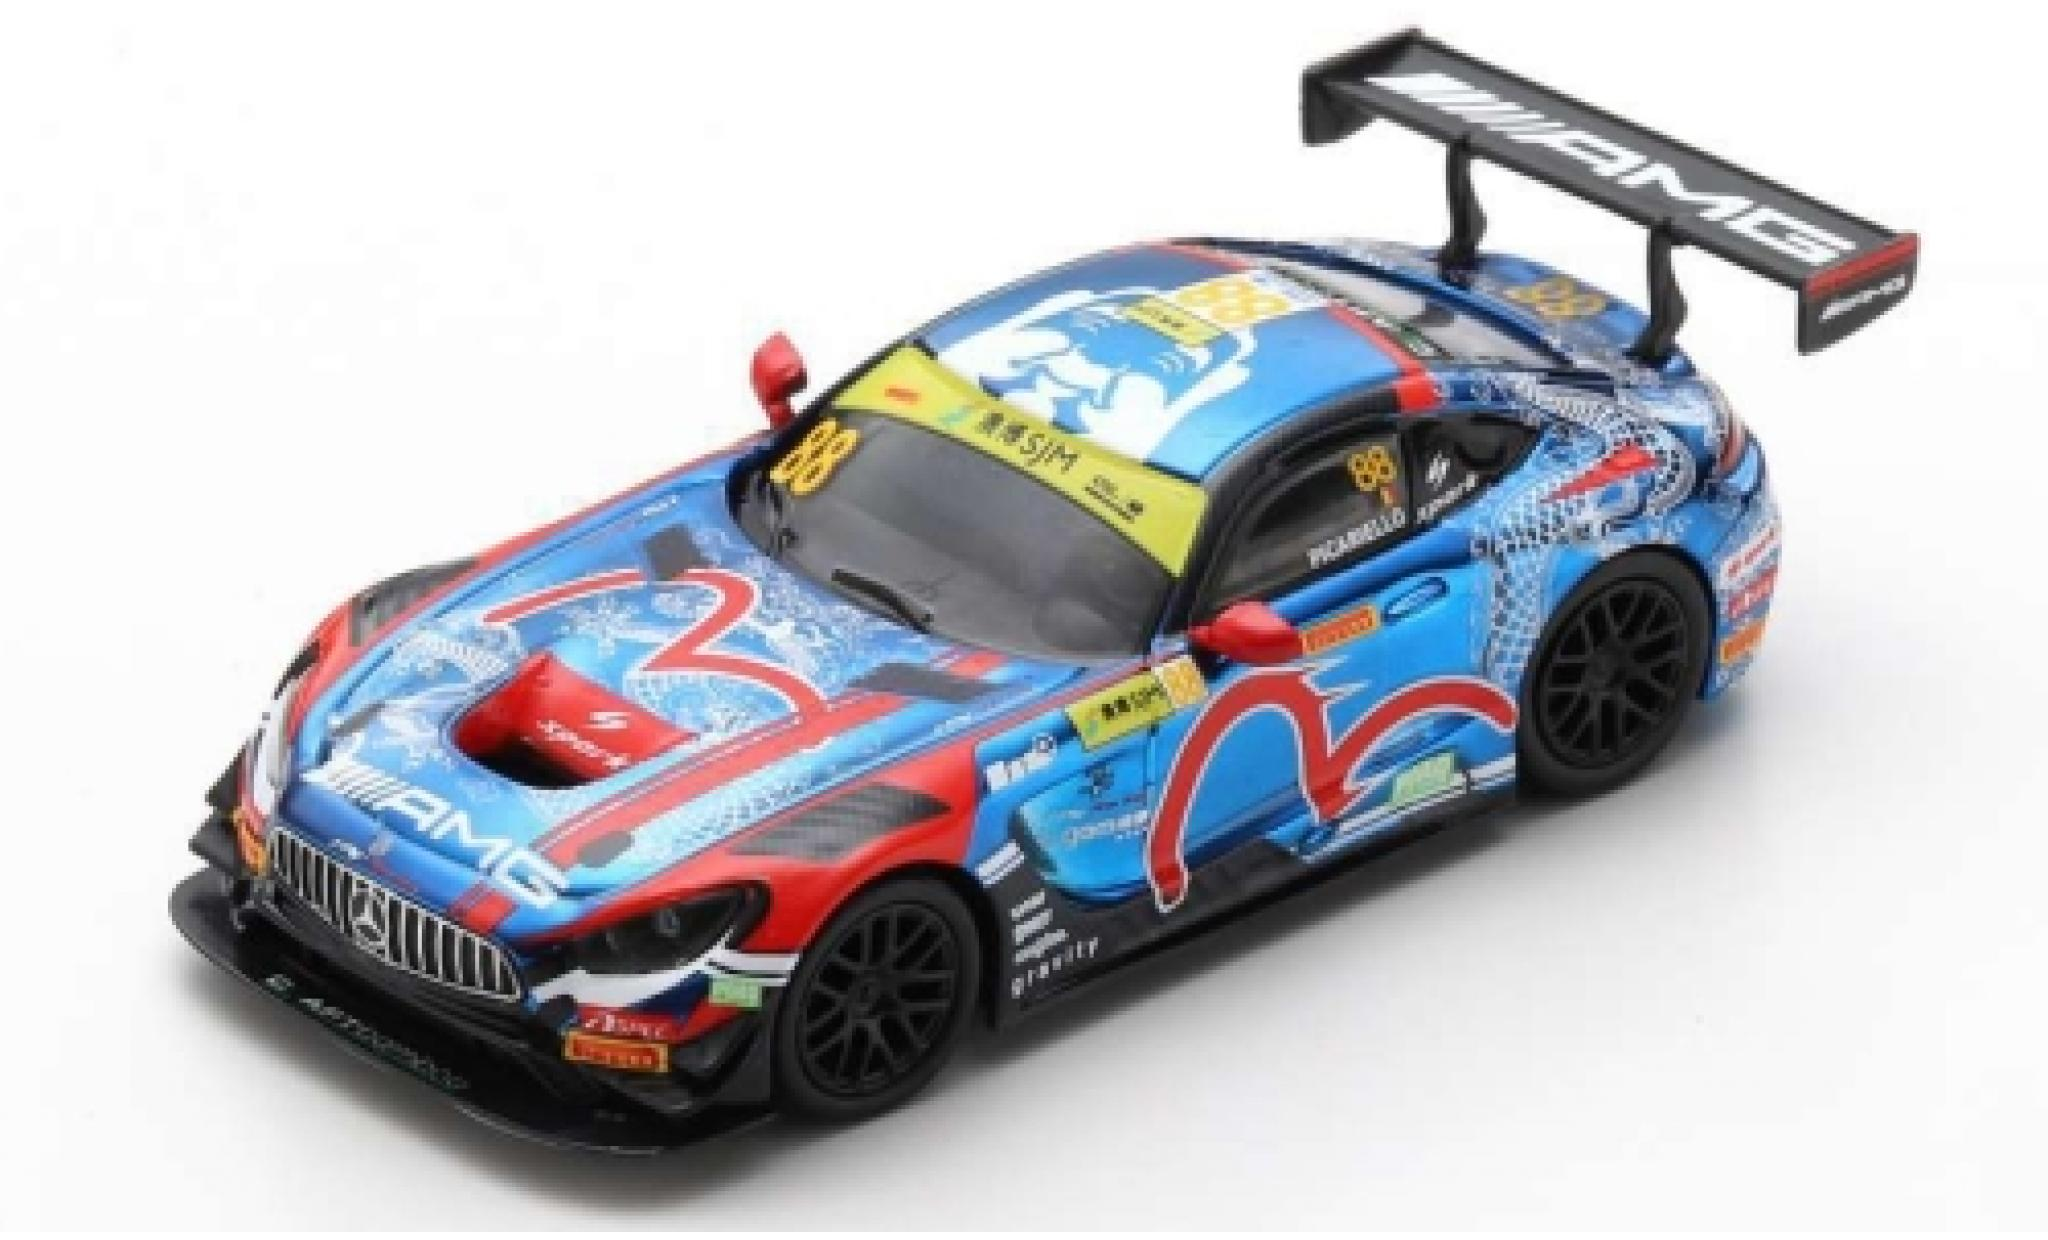 Mercedes AMG GT 1/64 Spark 3 No.88 -AMG Team CraftBamboo Racing Fia GT World Cup Macau 2019 A.Picariello